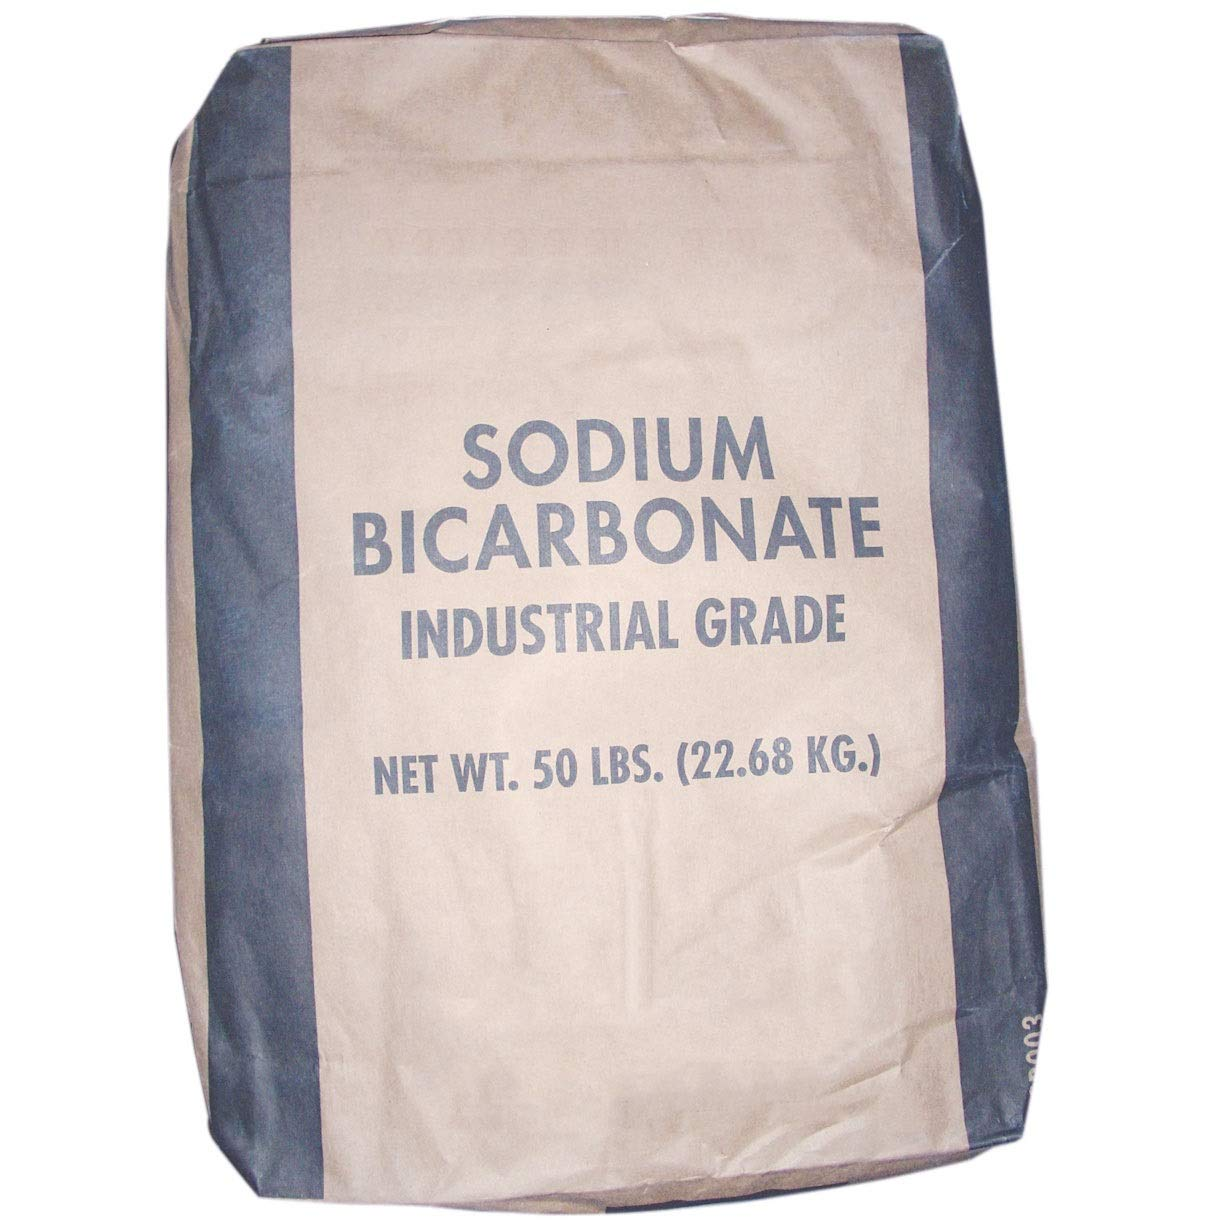 In The Swim Alkalinity Increaser Sodium Bicarbonate for Pool Spa 50 Pound Bag by In The Swim